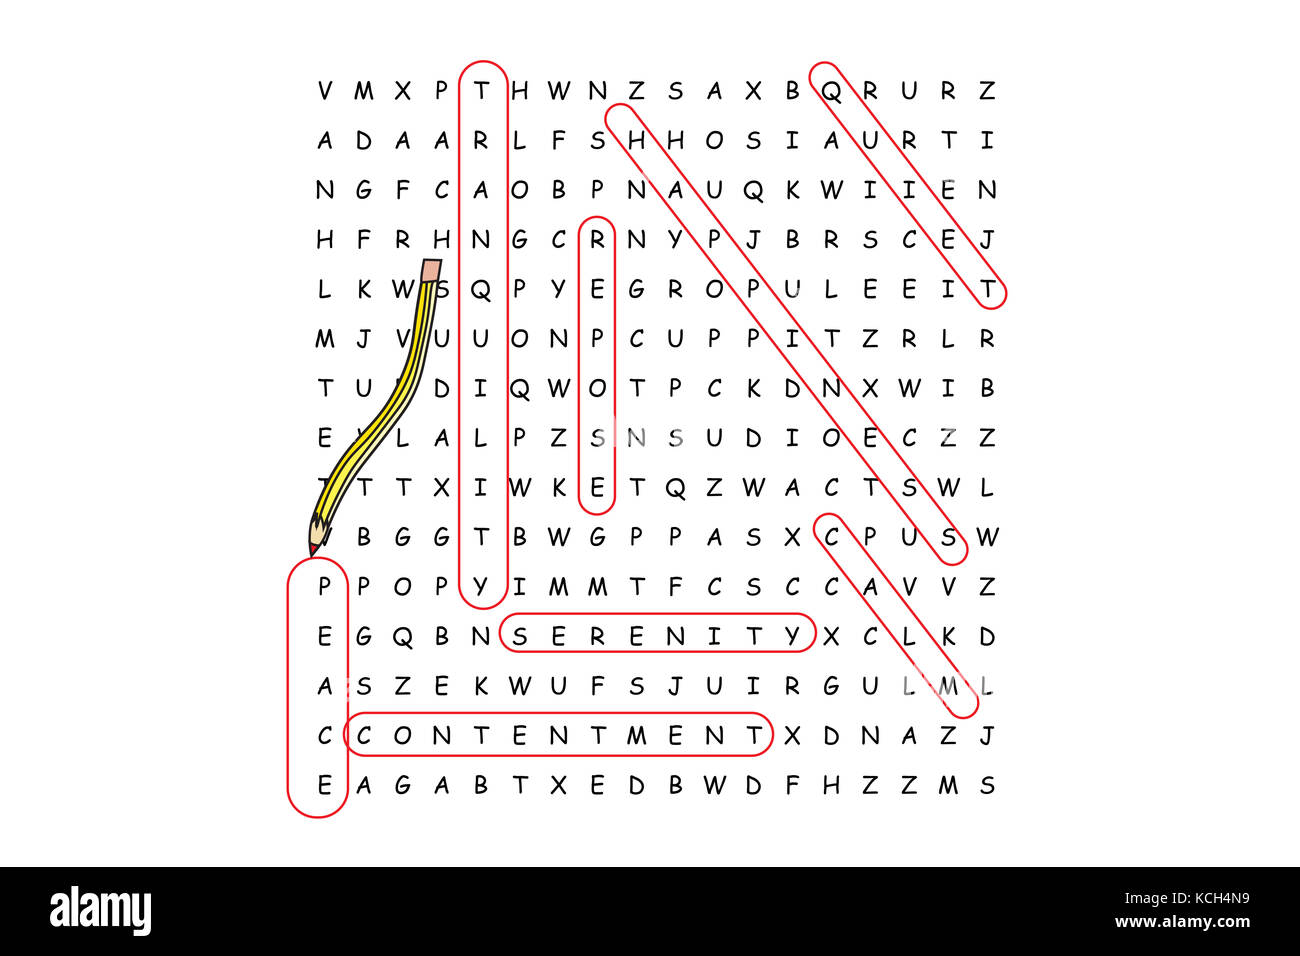 Finding peace word search puzzle with red pencil and associated words. - Stock Image